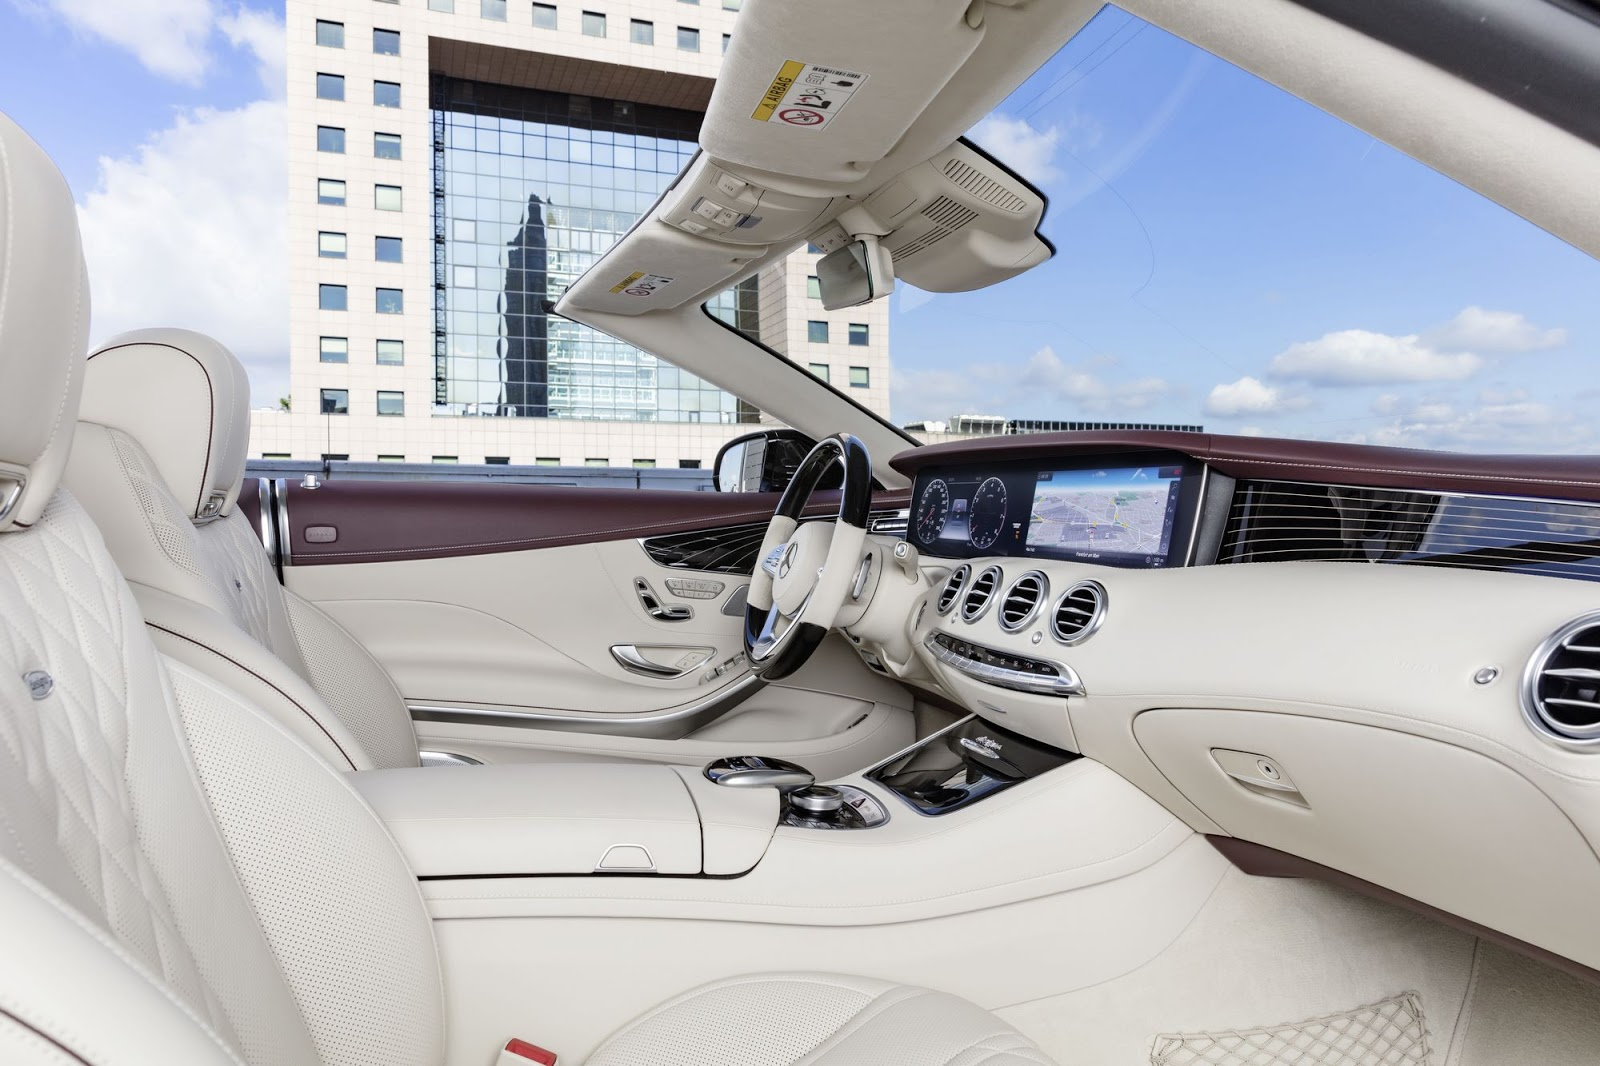 Mercedes-Benz S-Klasse Cabriolet; A 217; Interieur: designo Leder porzellan/tizianrot; Zierteile: designo Klavierlack flowing lines schwarz 